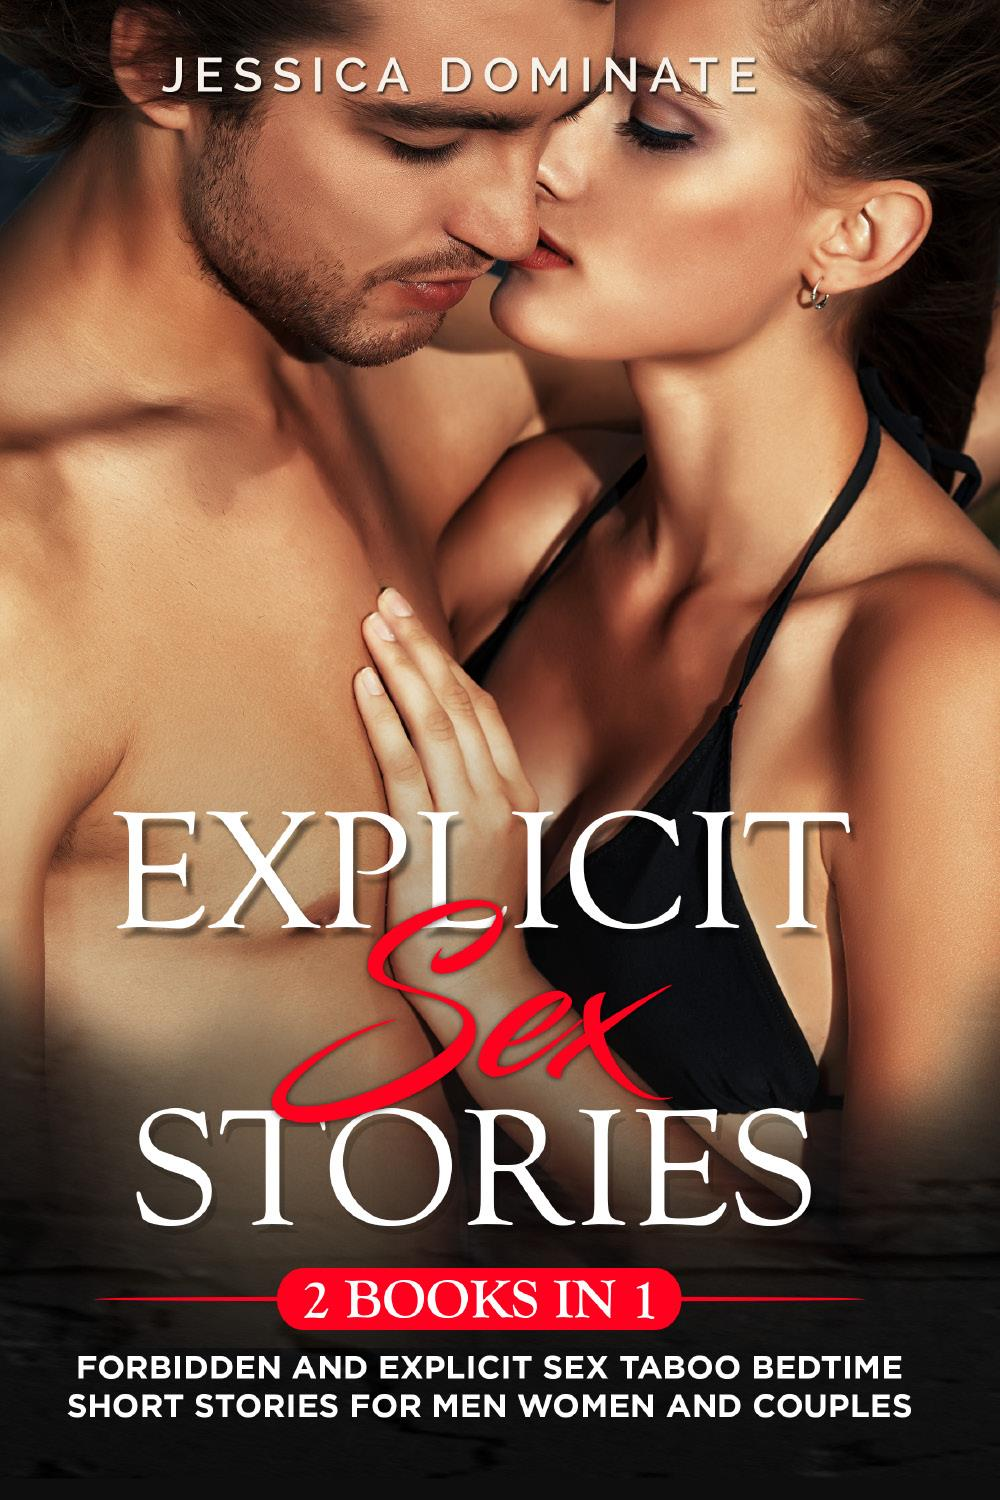 Explicit Sex Stories (2 Books in 1). Forbidden and Explicit Sex Taboo Bedtime Short Stories for Men Women and Couples